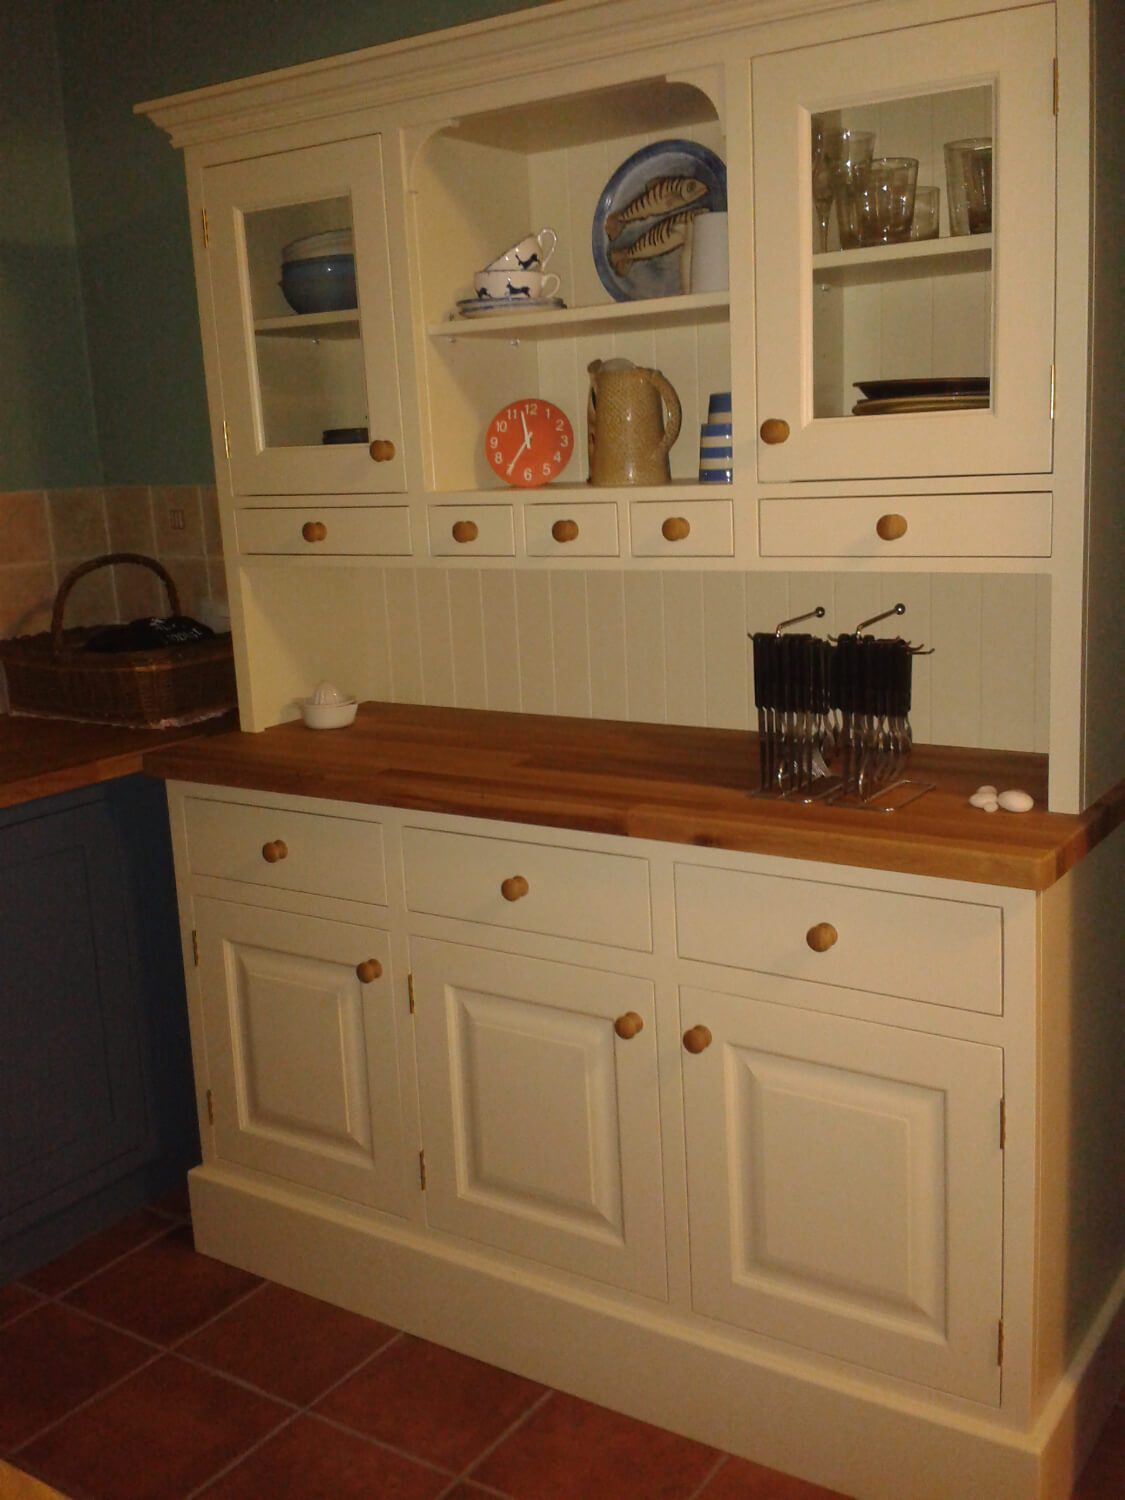 Painted dresser unit